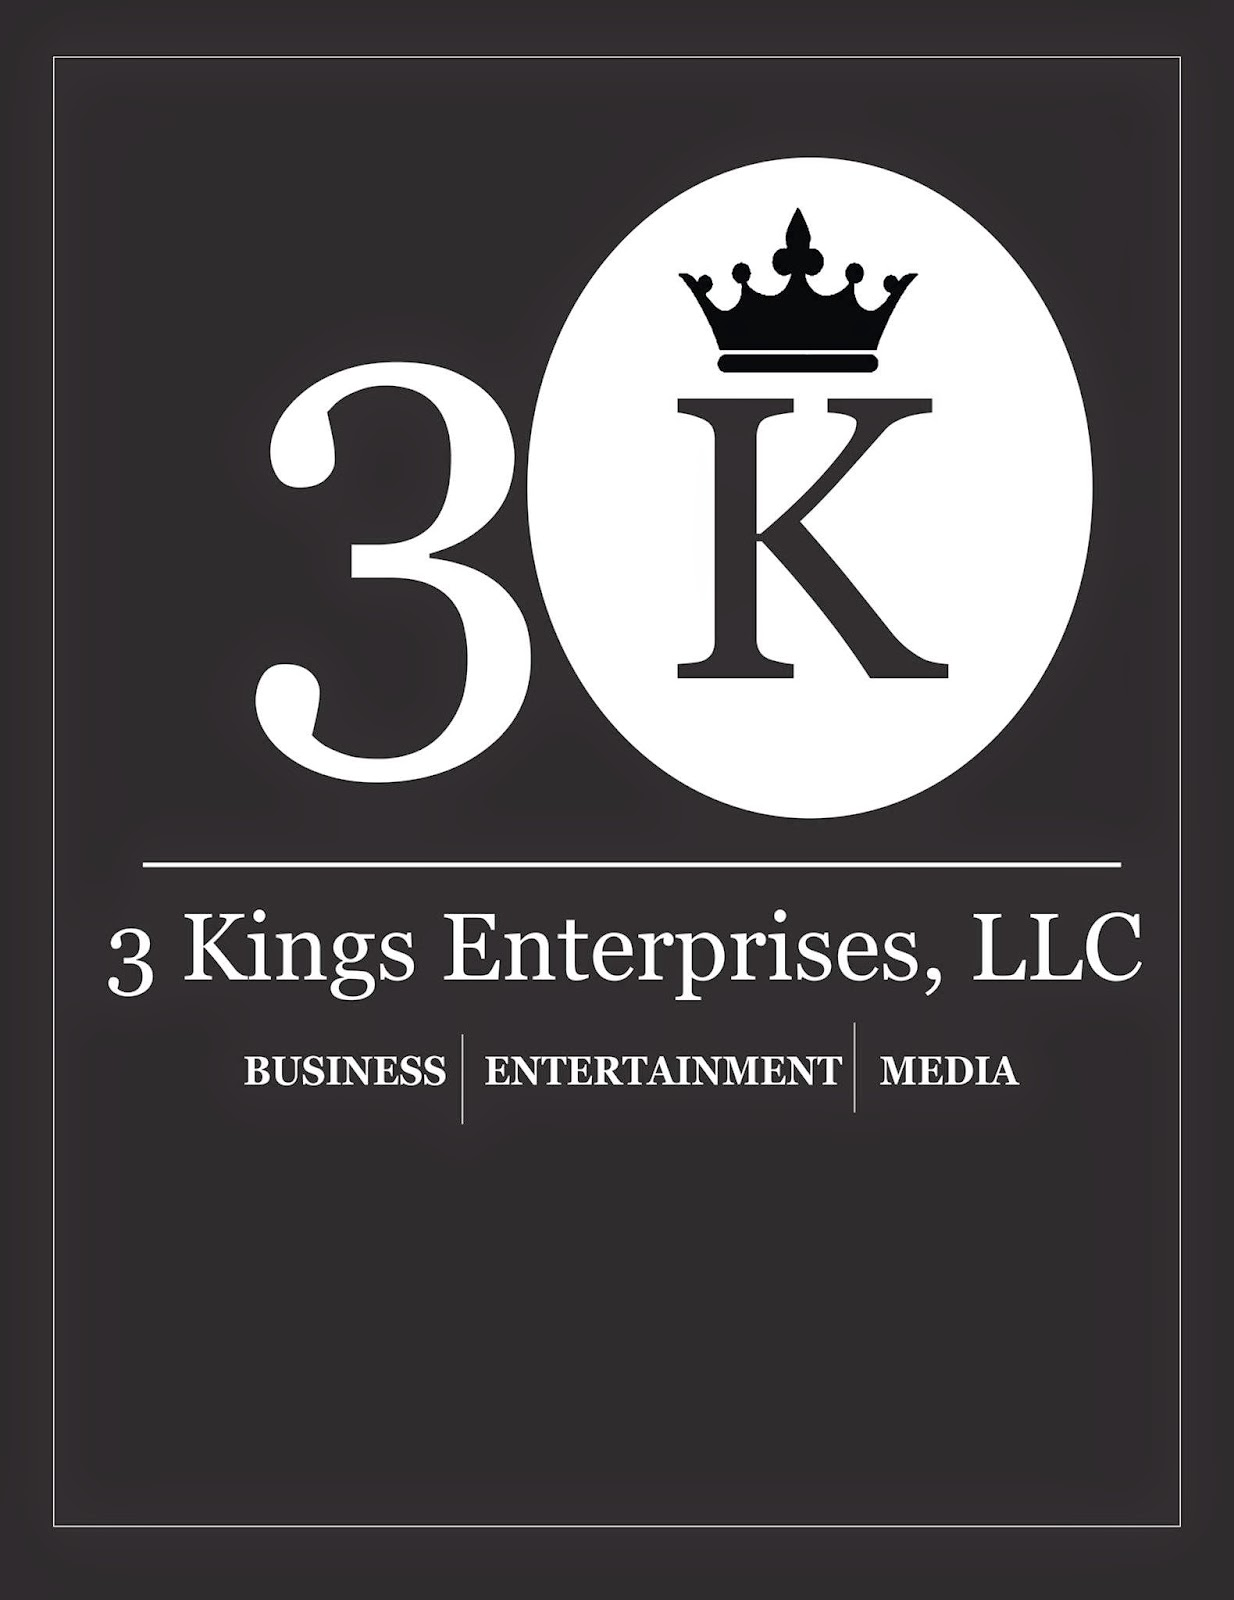 3 Kings Enterprises Home